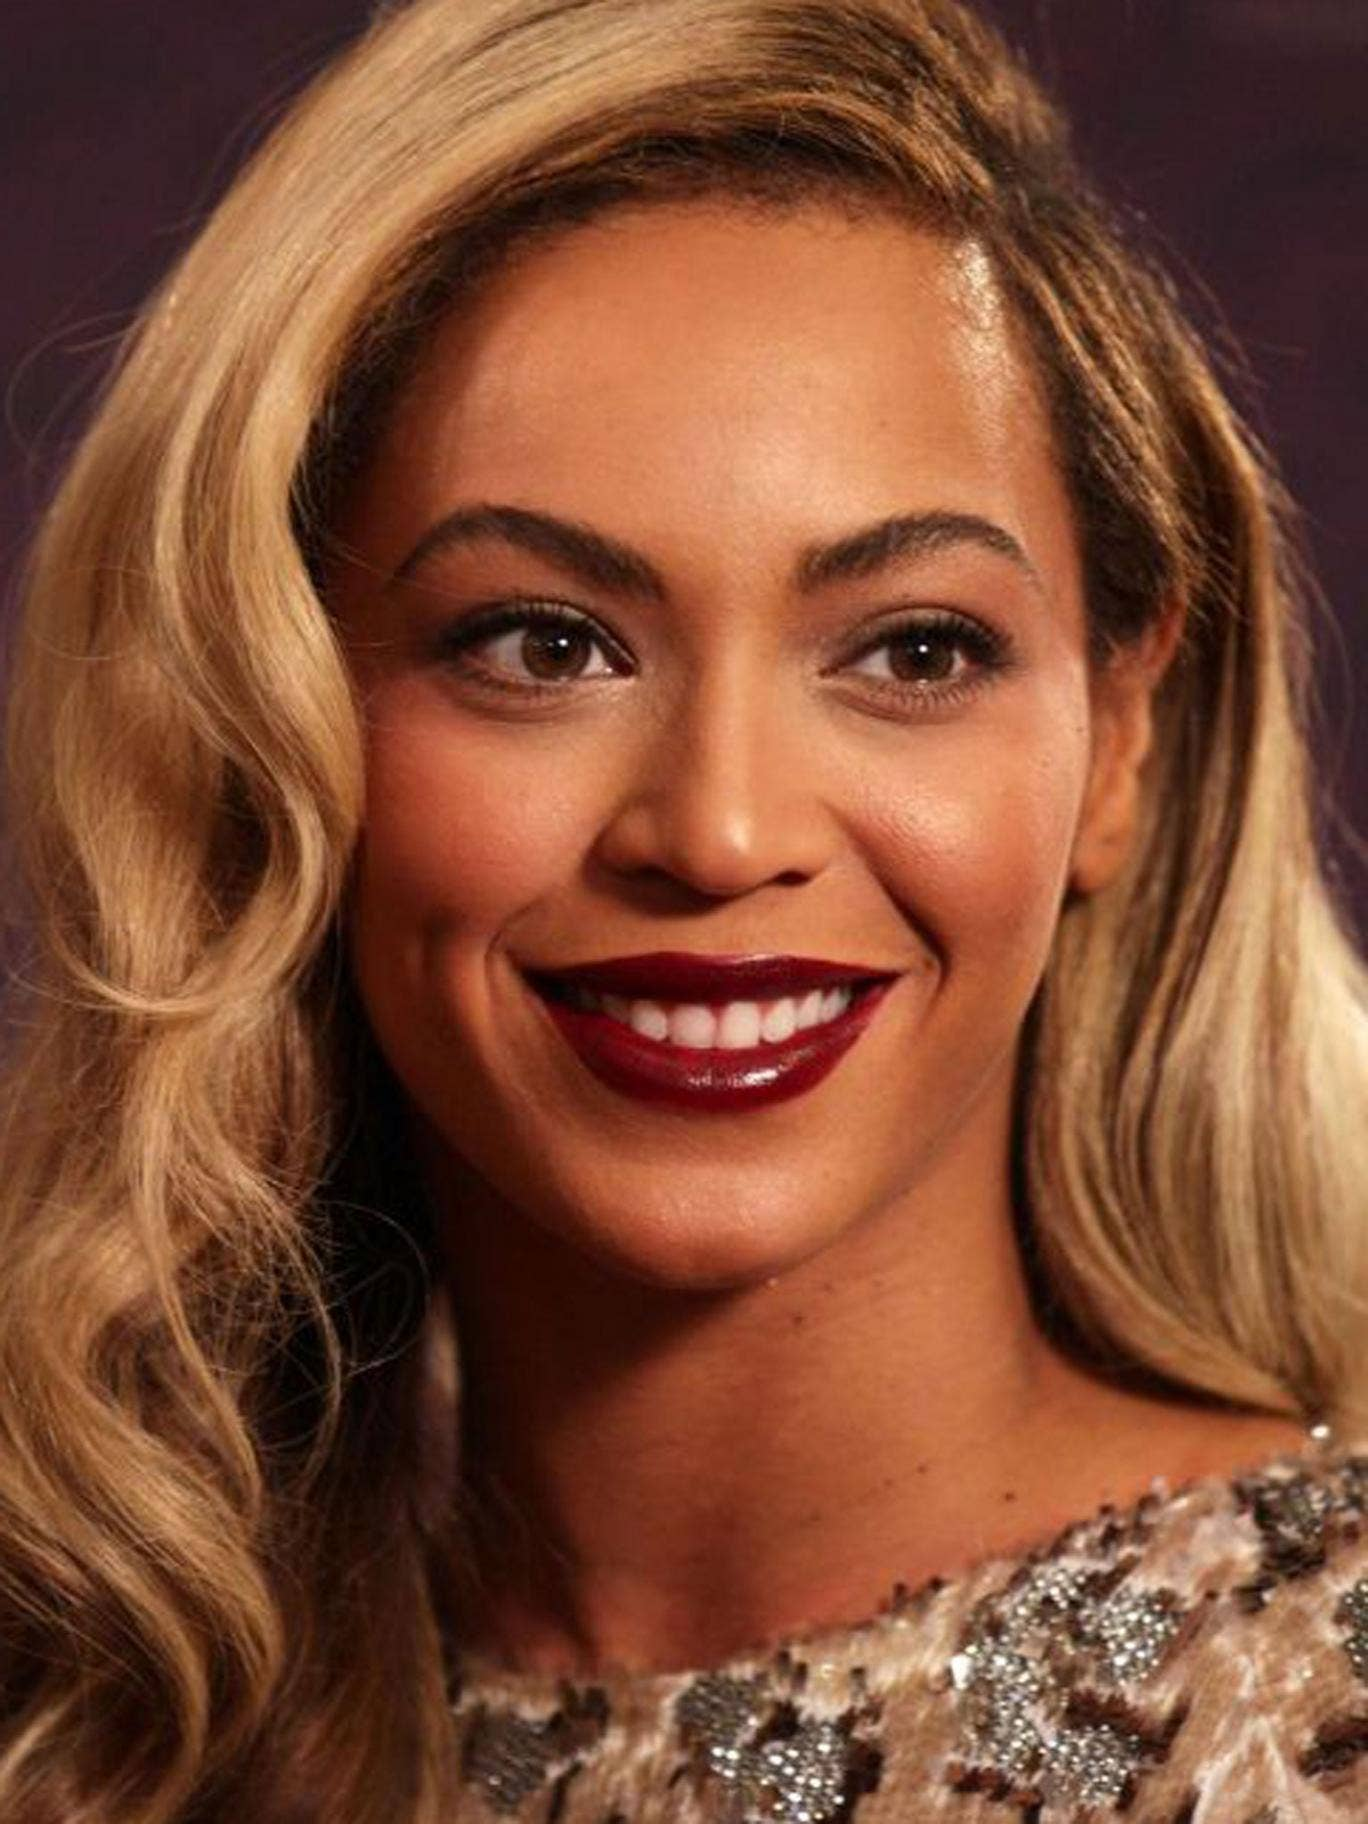 Beyonce's new album is 'as billowing and bountiful as that legendary booty'